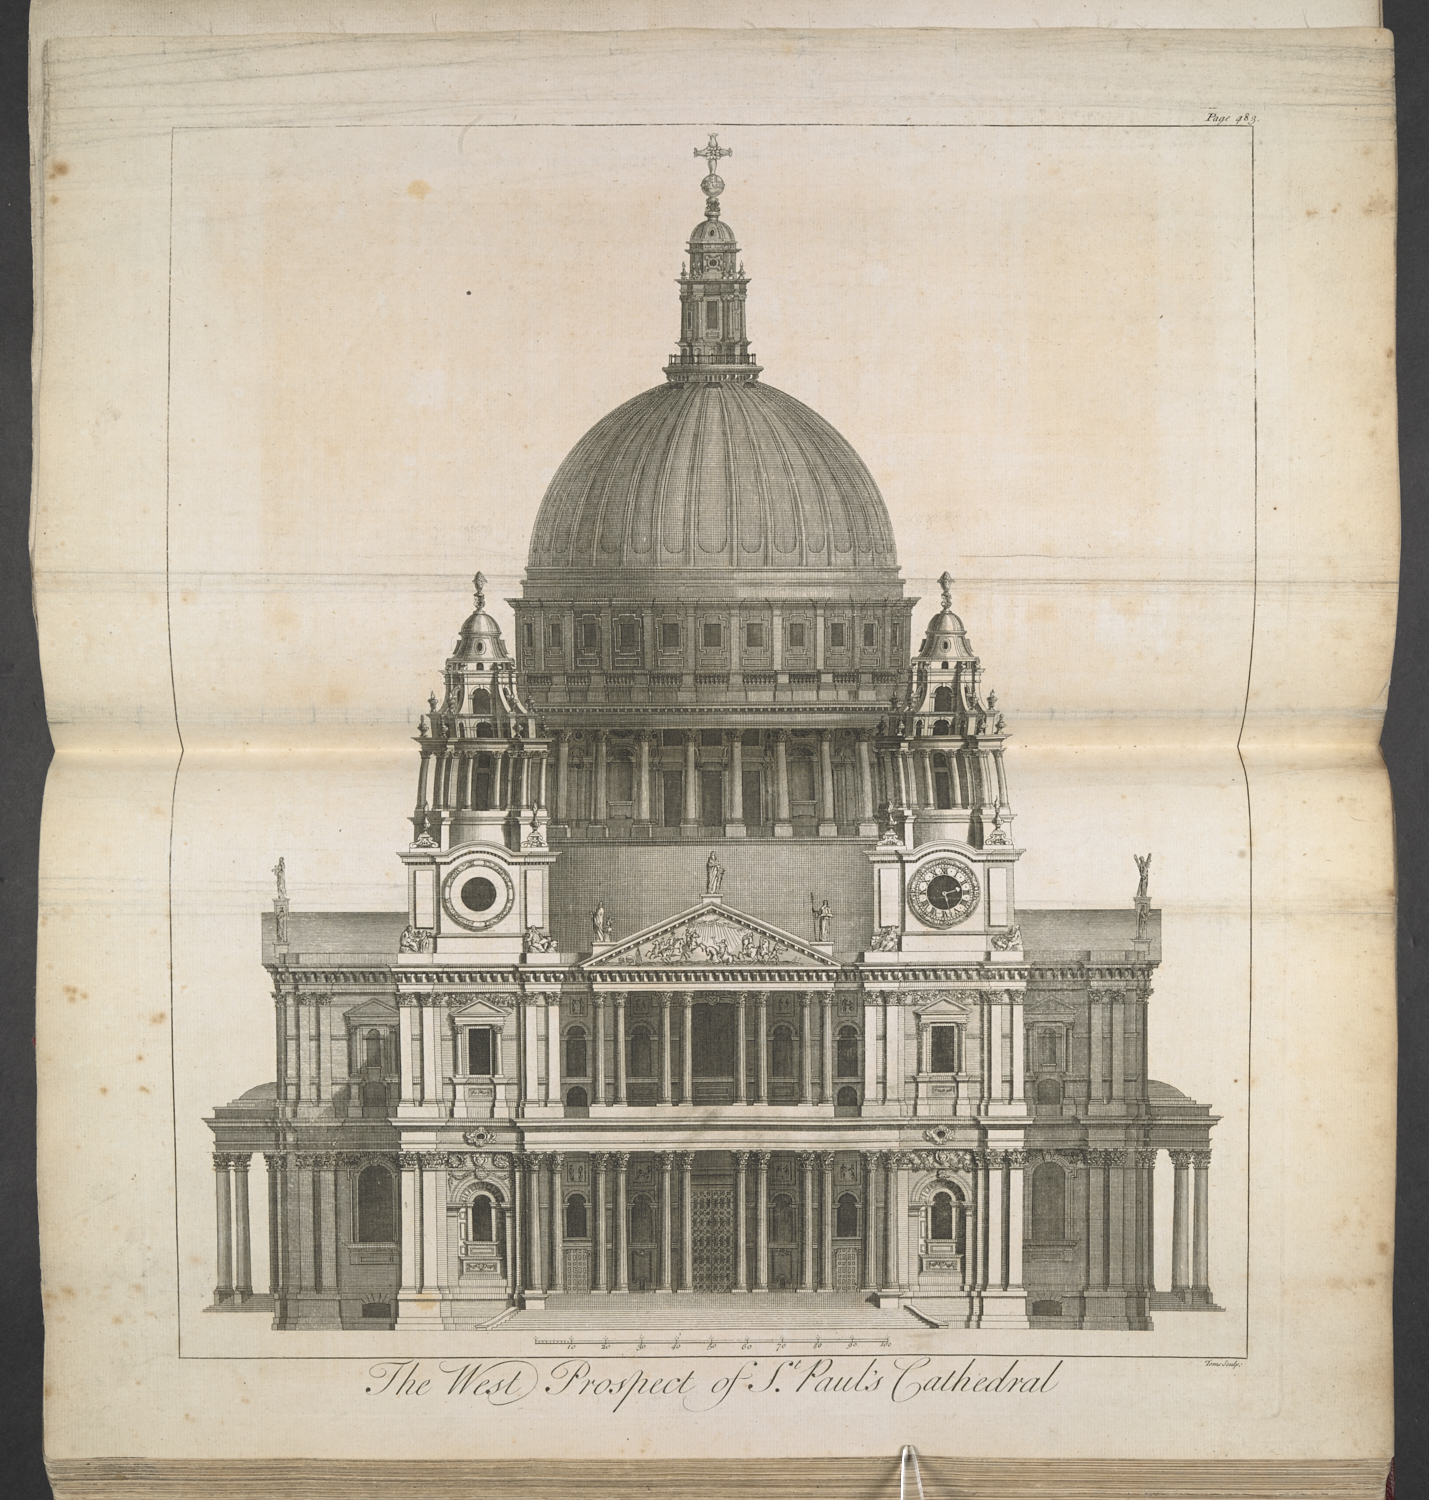 William Henry Toms, The West Prospect of St. Paul's Cathedral, from Maitland's History of London, (London: Samuel Richardson, 1739), etching and engraving, 46 x 38 cm, 1855.b.6. (plate between pp.482-83)